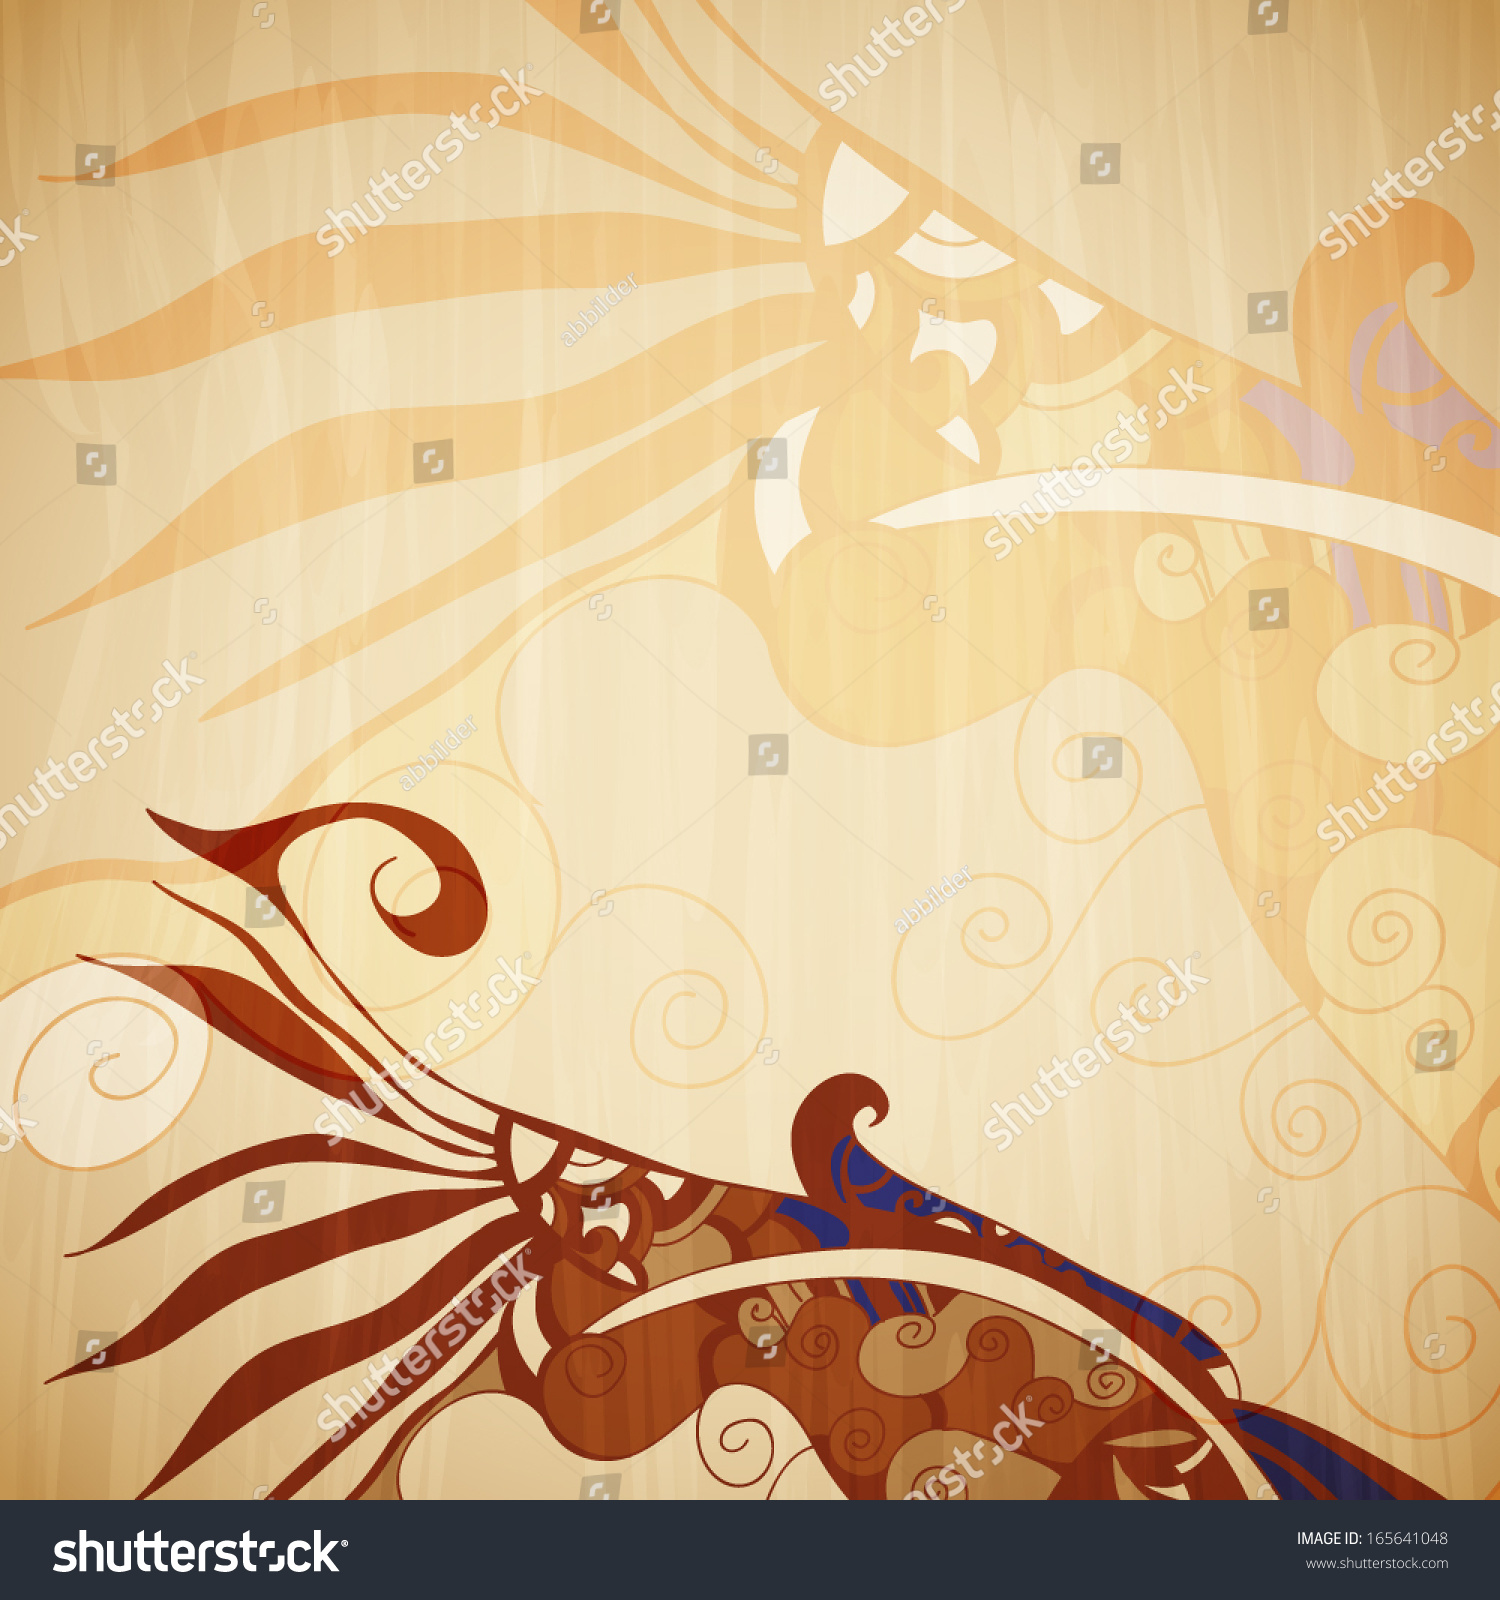 batik background stock vector royalty free 165641048 https www shutterstock com image vector batik background 165641048